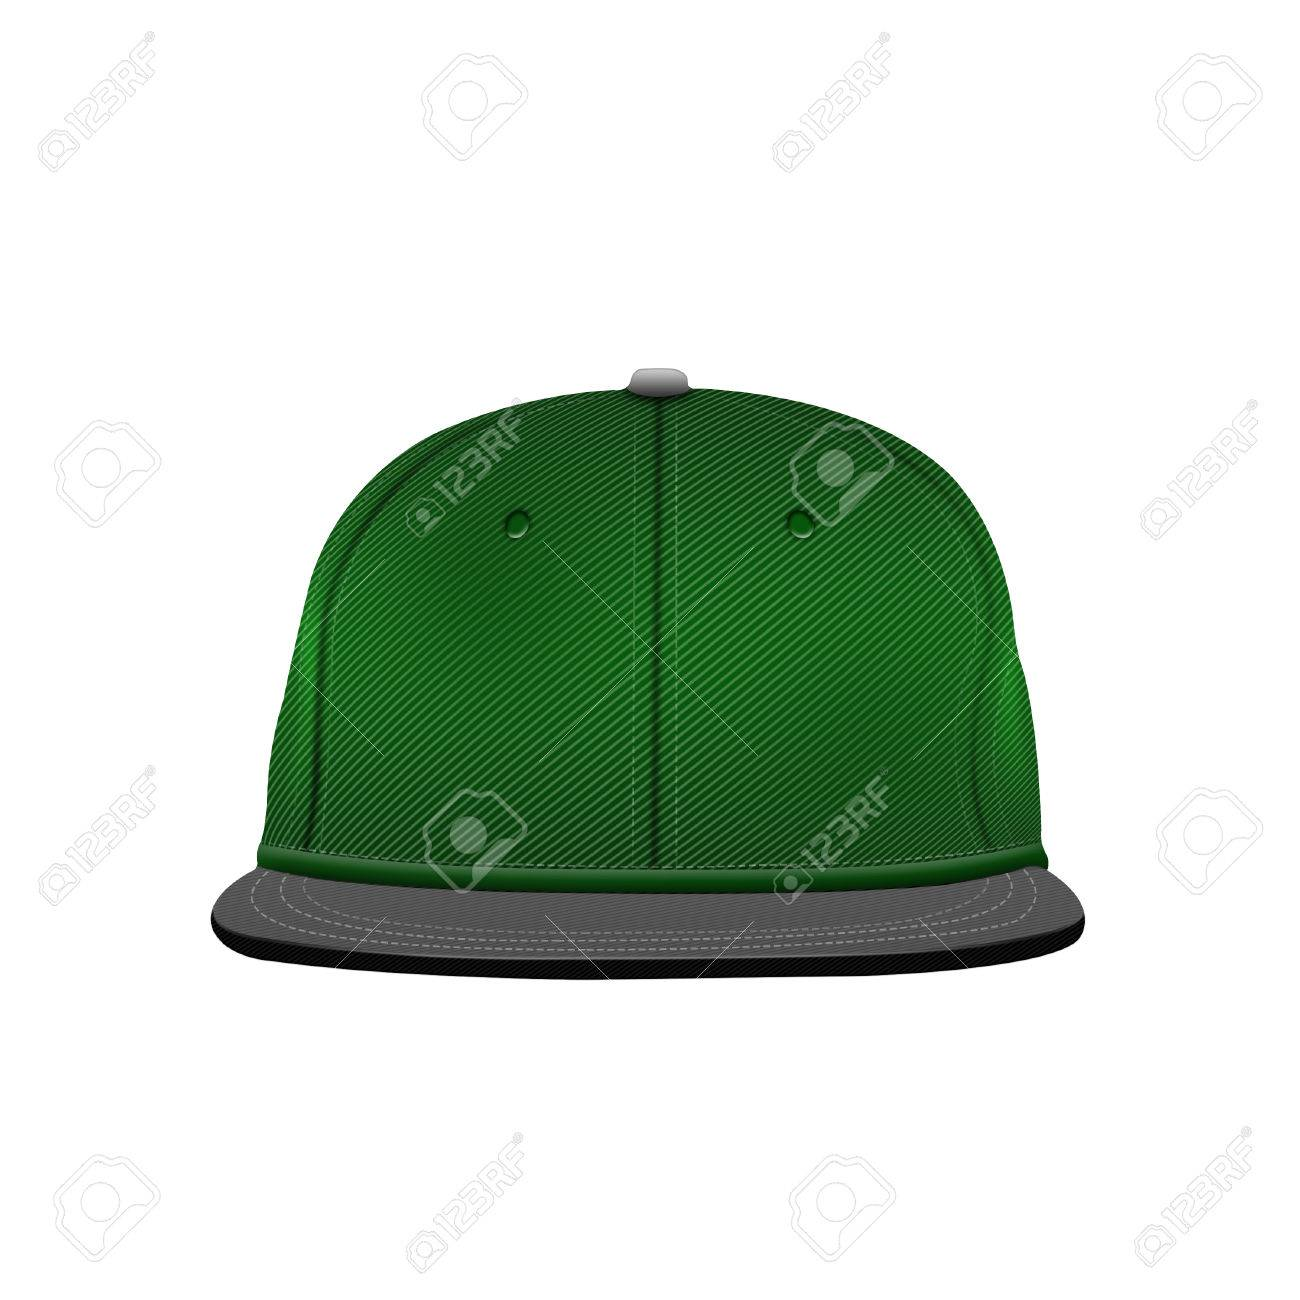 baseball cap template stock photo picture and royalty free image